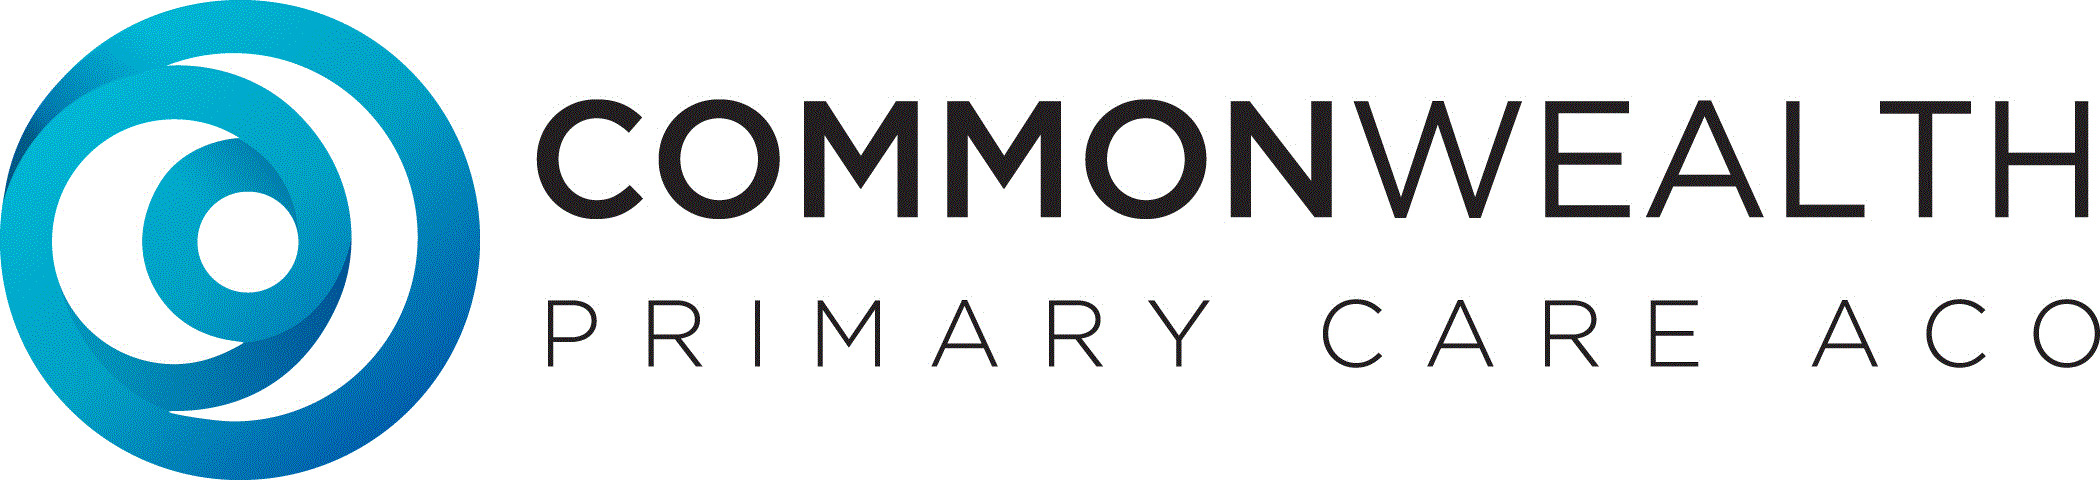 Commonwealth Primary Care Aco Linkedin